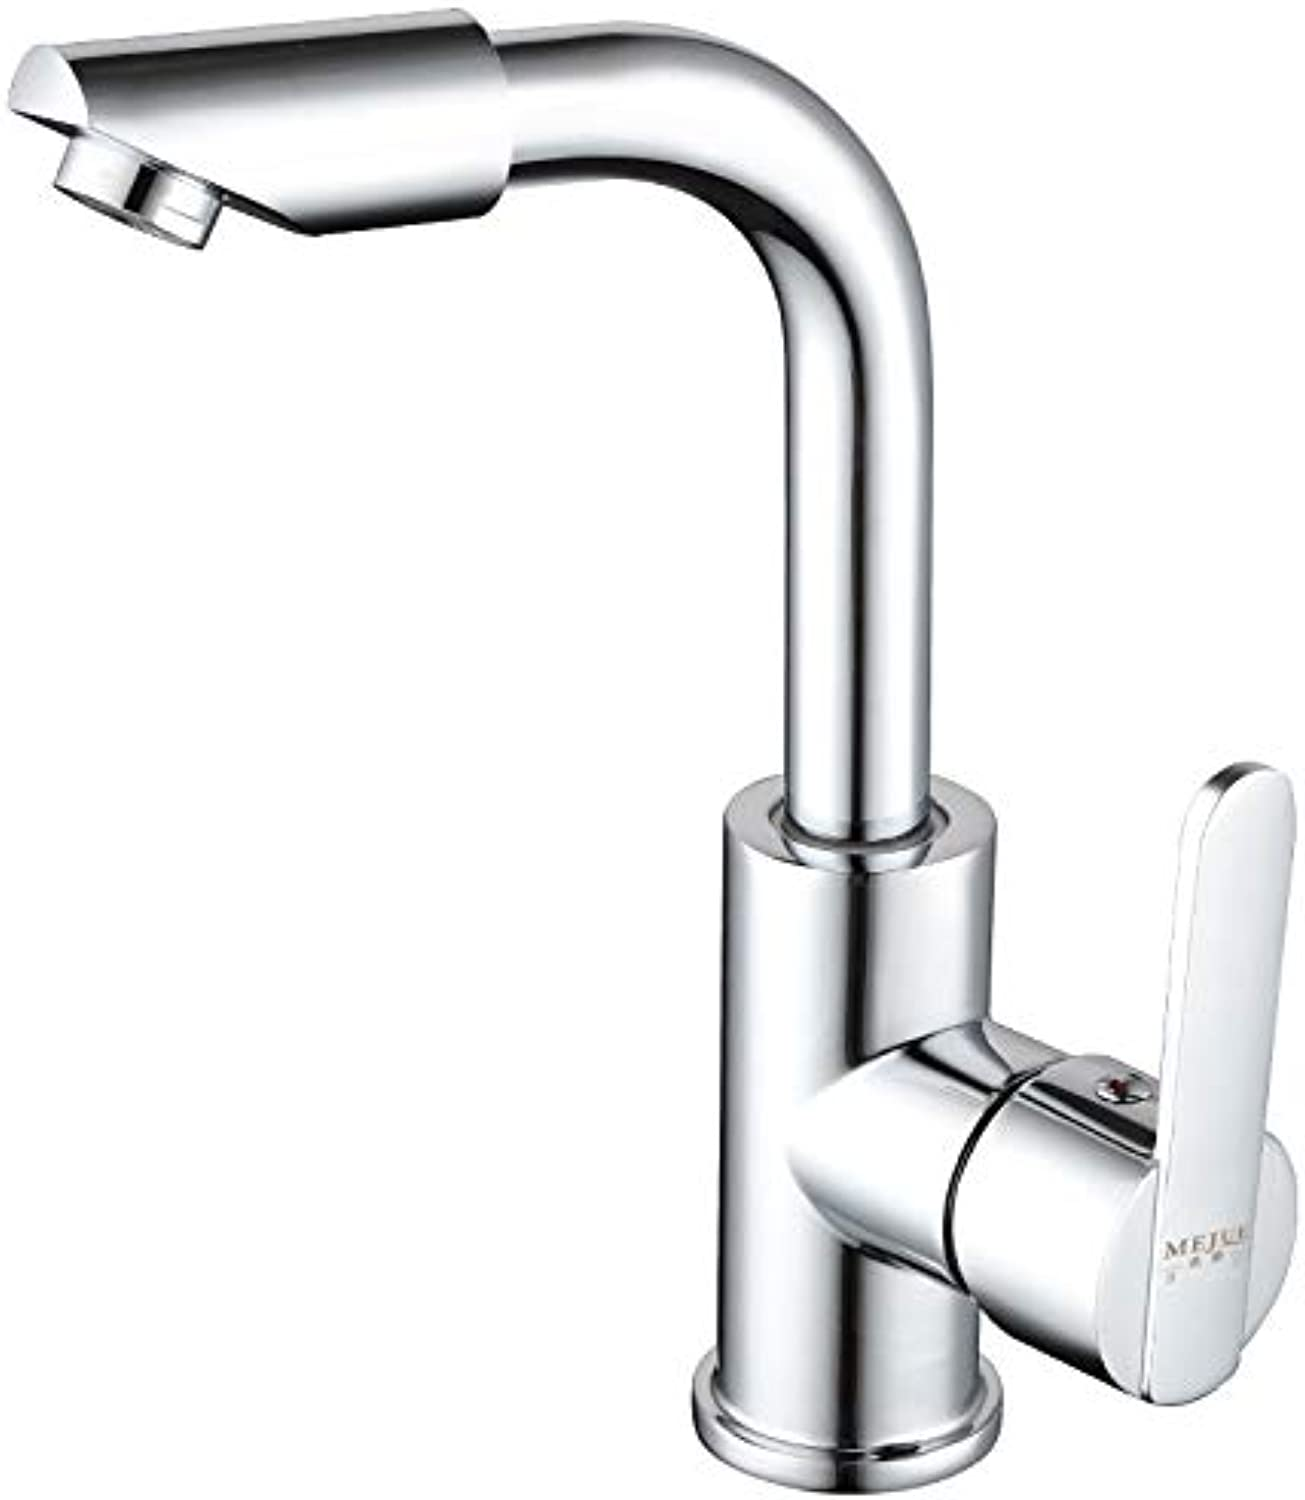 ROKTONG Seafood Scissors Sink Taps Filter Taps 360 Degree redating Single Hole Copper Hot And Cold Basin Mixer